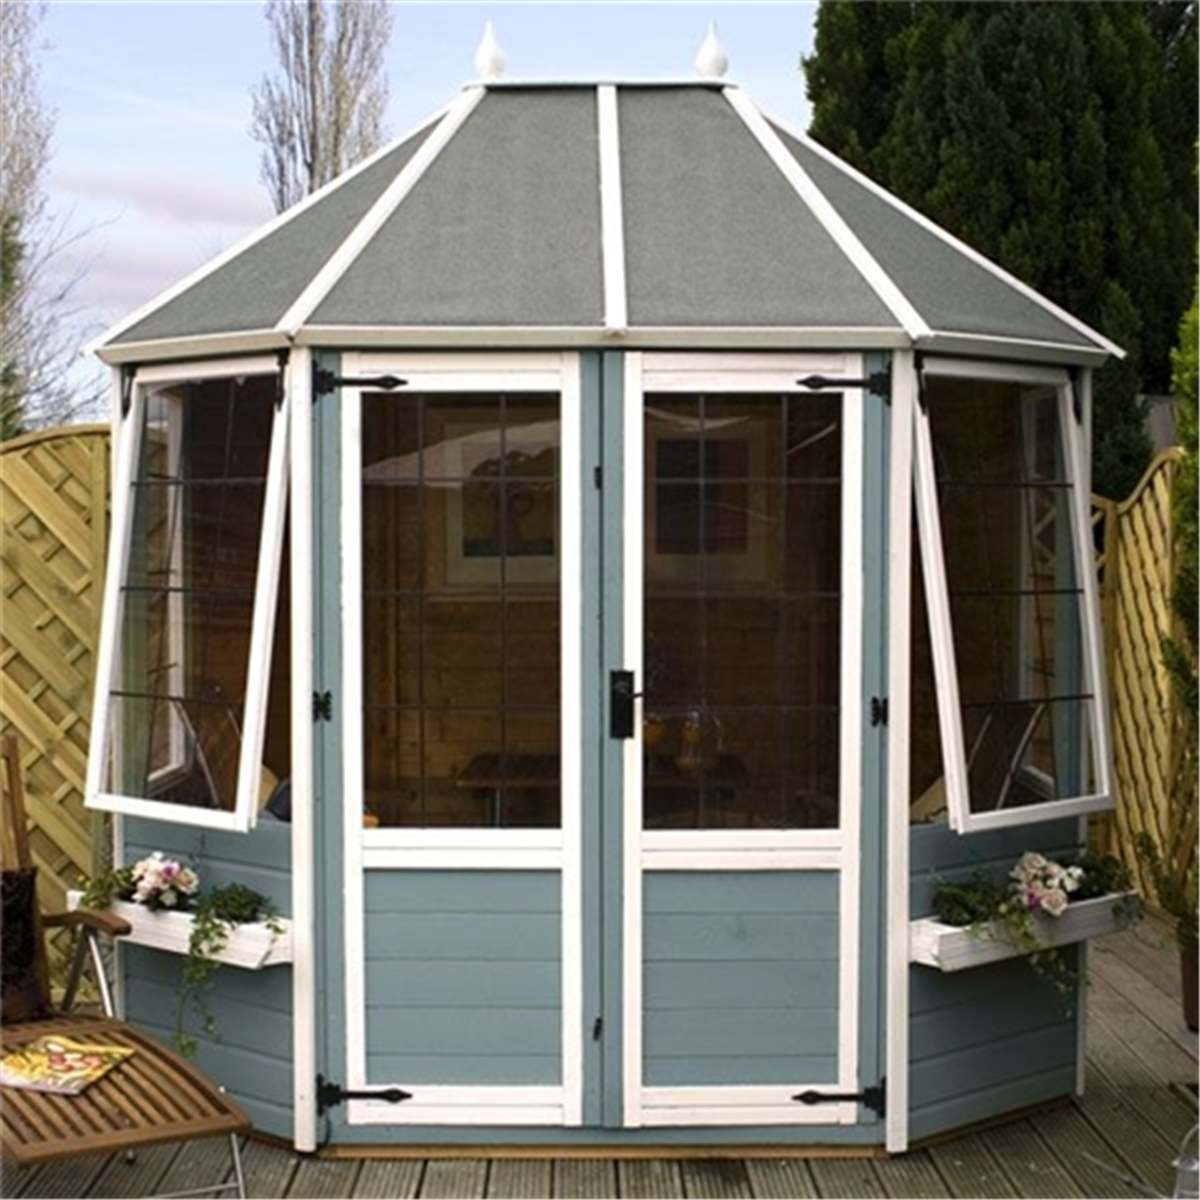 Winsome Installed  X  Premier Octagonal Summerhouse  Includes Installation With Hot Escape Summerhouses Installed  X  Premier Wooden Octagonal Garden  Summerhouse Mm Tongue And Groove Floor  Includes Installation With Beauteous Cath Kidston Gardening Also Guardian Garden Shop In Addition Rectangular Garden Pots And Garden Swing Seat Bed As Well As Gardening Services Chelmsford Additionally Carpet Cleaning Welwyn Garden City From Ilikeshedscom With   Hot Installed  X  Premier Octagonal Summerhouse  Includes Installation With Beauteous Escape Summerhouses Installed  X  Premier Wooden Octagonal Garden  Summerhouse Mm Tongue And Groove Floor  Includes Installation And Winsome Cath Kidston Gardening Also Guardian Garden Shop In Addition Rectangular Garden Pots From Ilikeshedscom